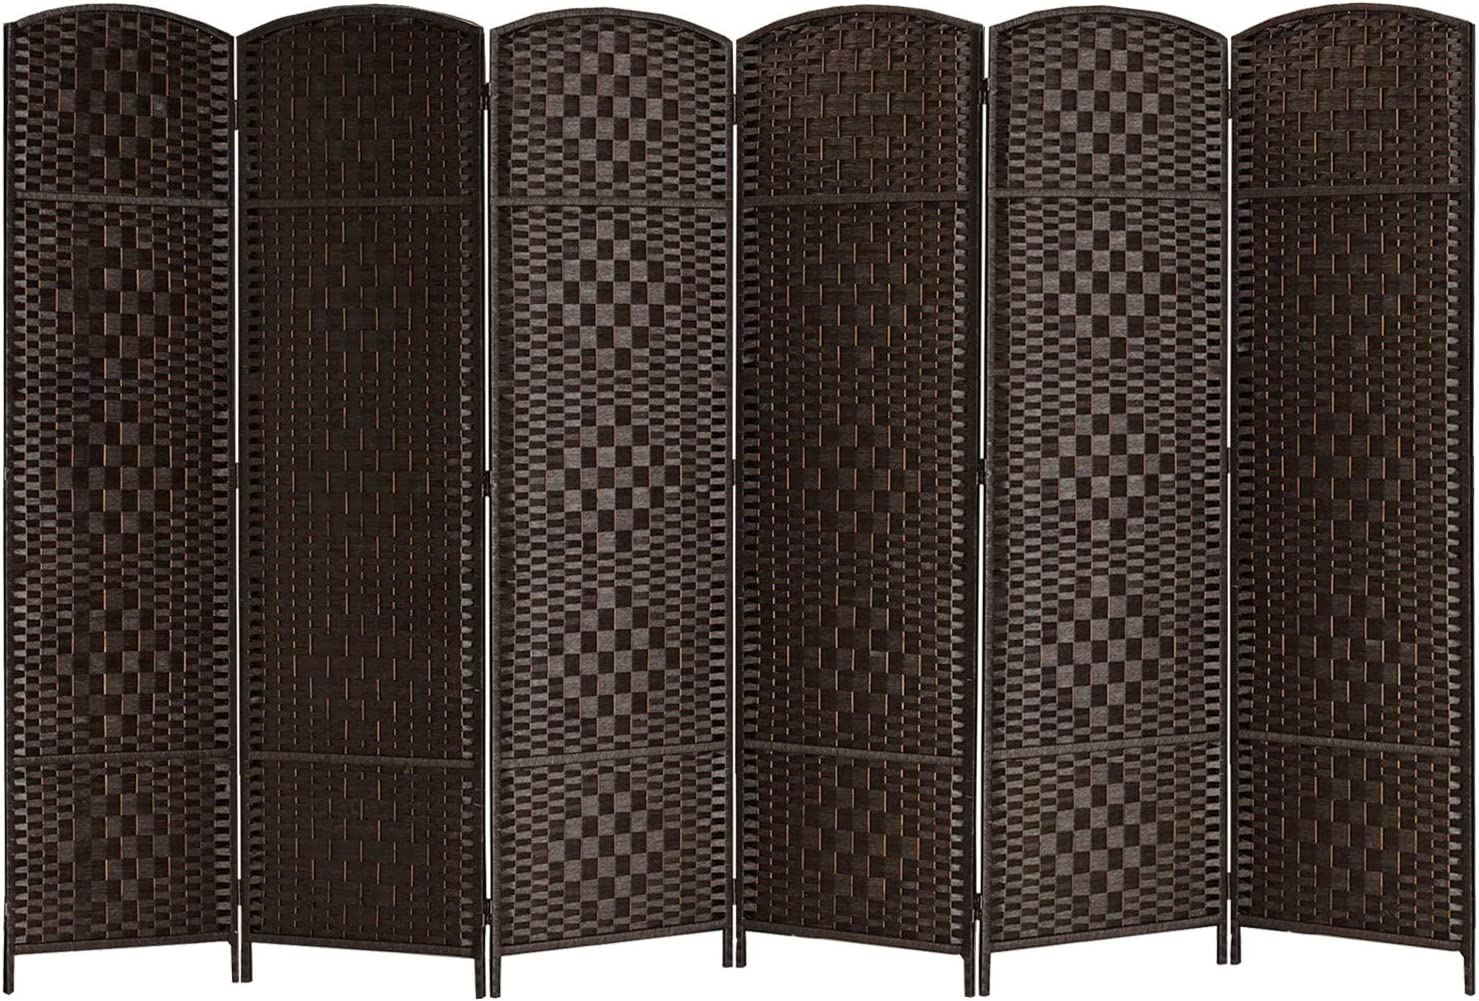 "Room Dividers, 6Ft. Tall Extra Wide 19"" Woven Fiber Folding Privacy Screens Panel, Partition & Wall Divider,Space Seperate Decorative Screen Panel,Double Hinged,Freestanding-6 Panel, Dark Coffee"